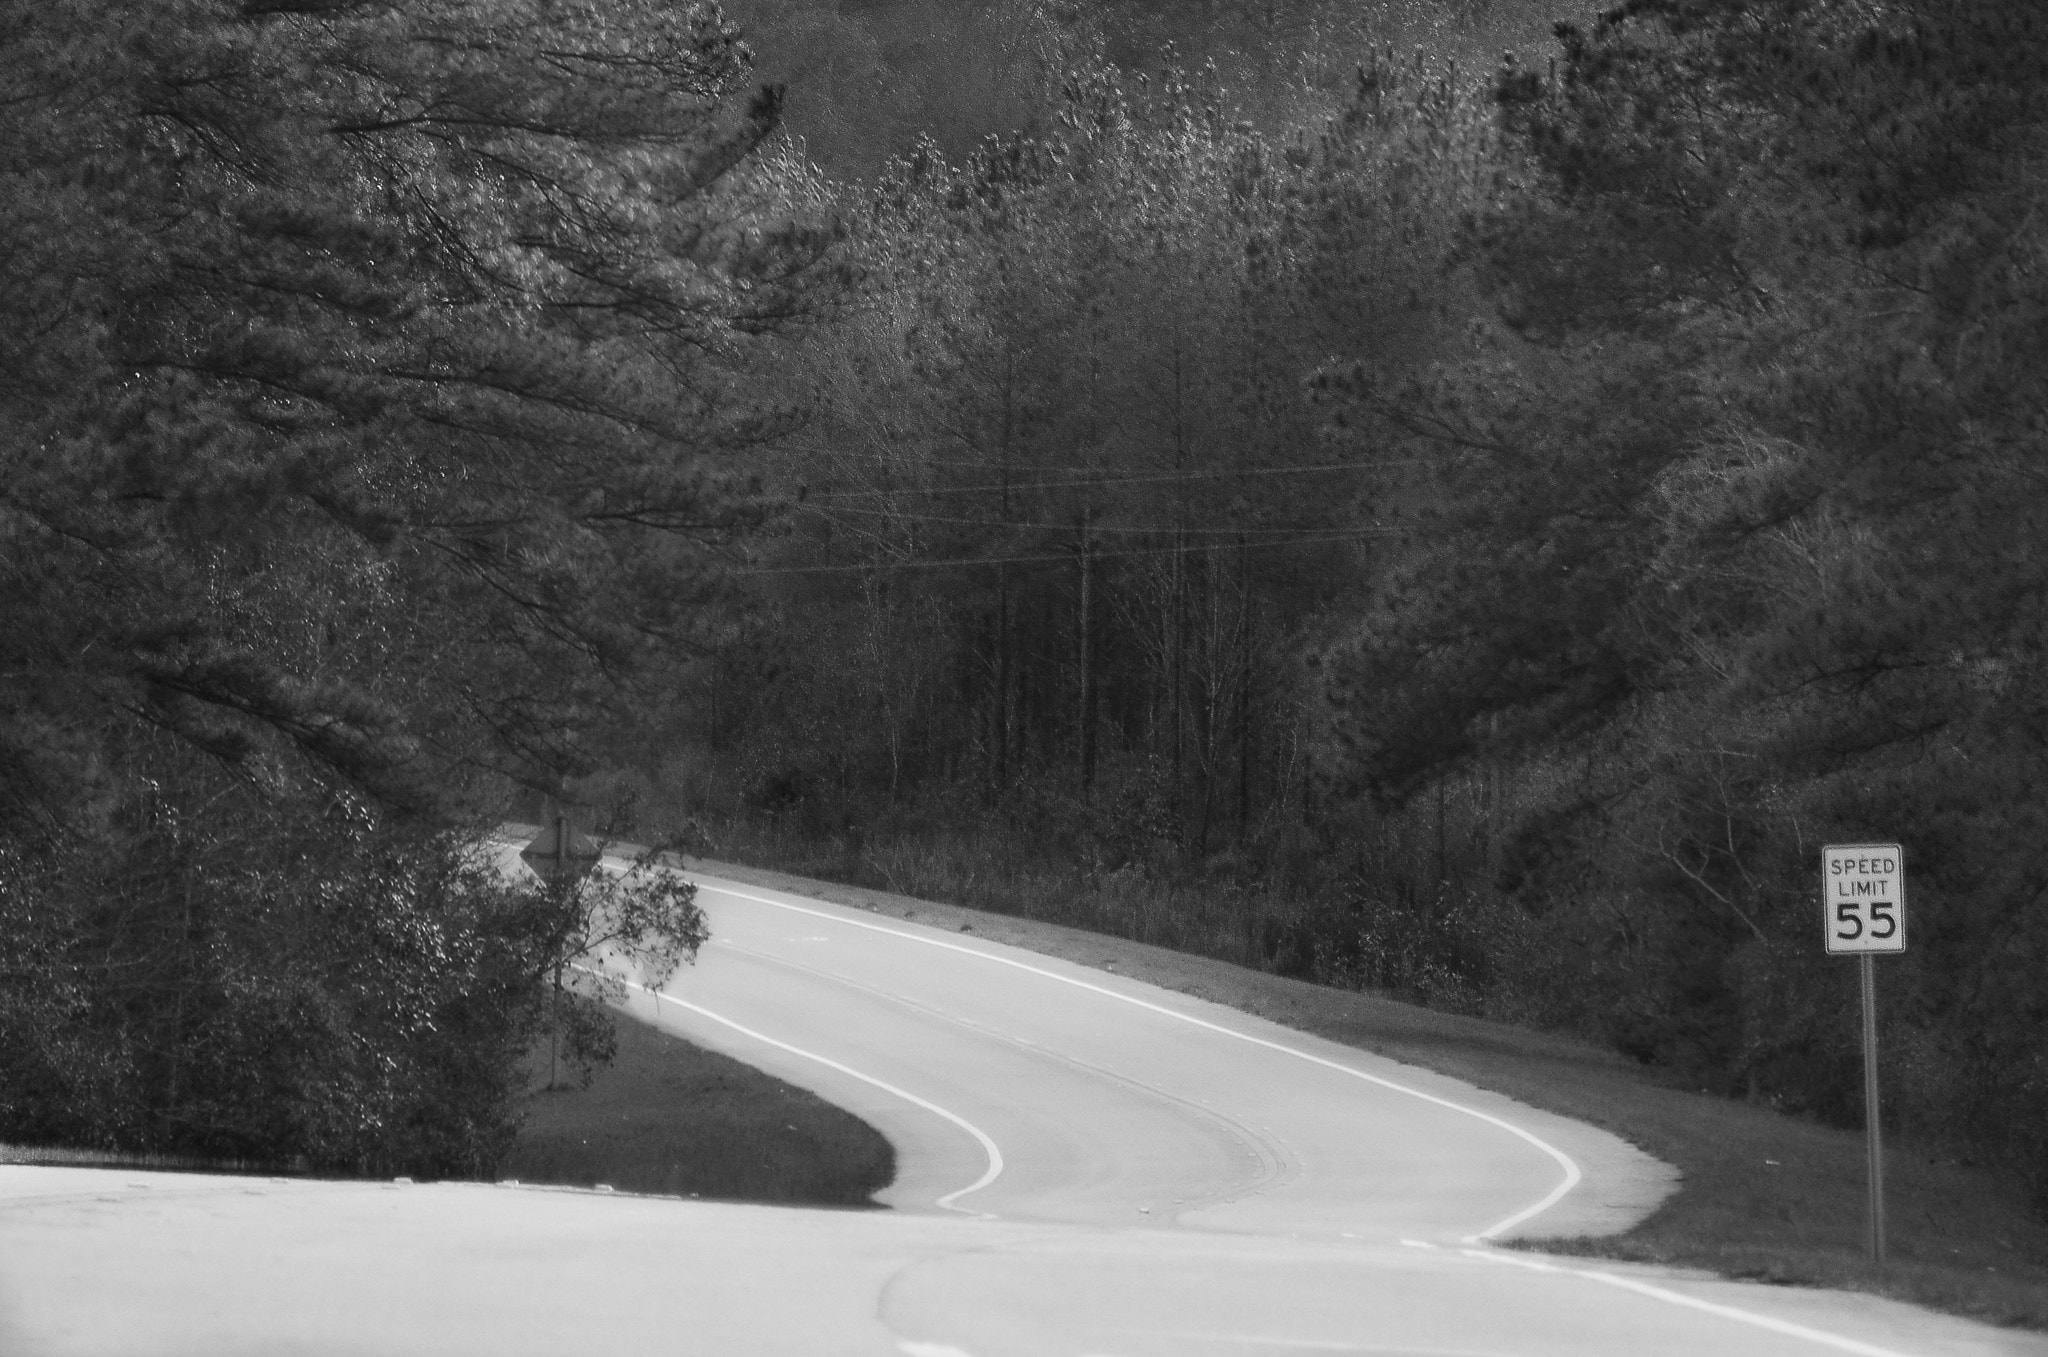 Photograph Curves Ahead by David Tapia on 500px